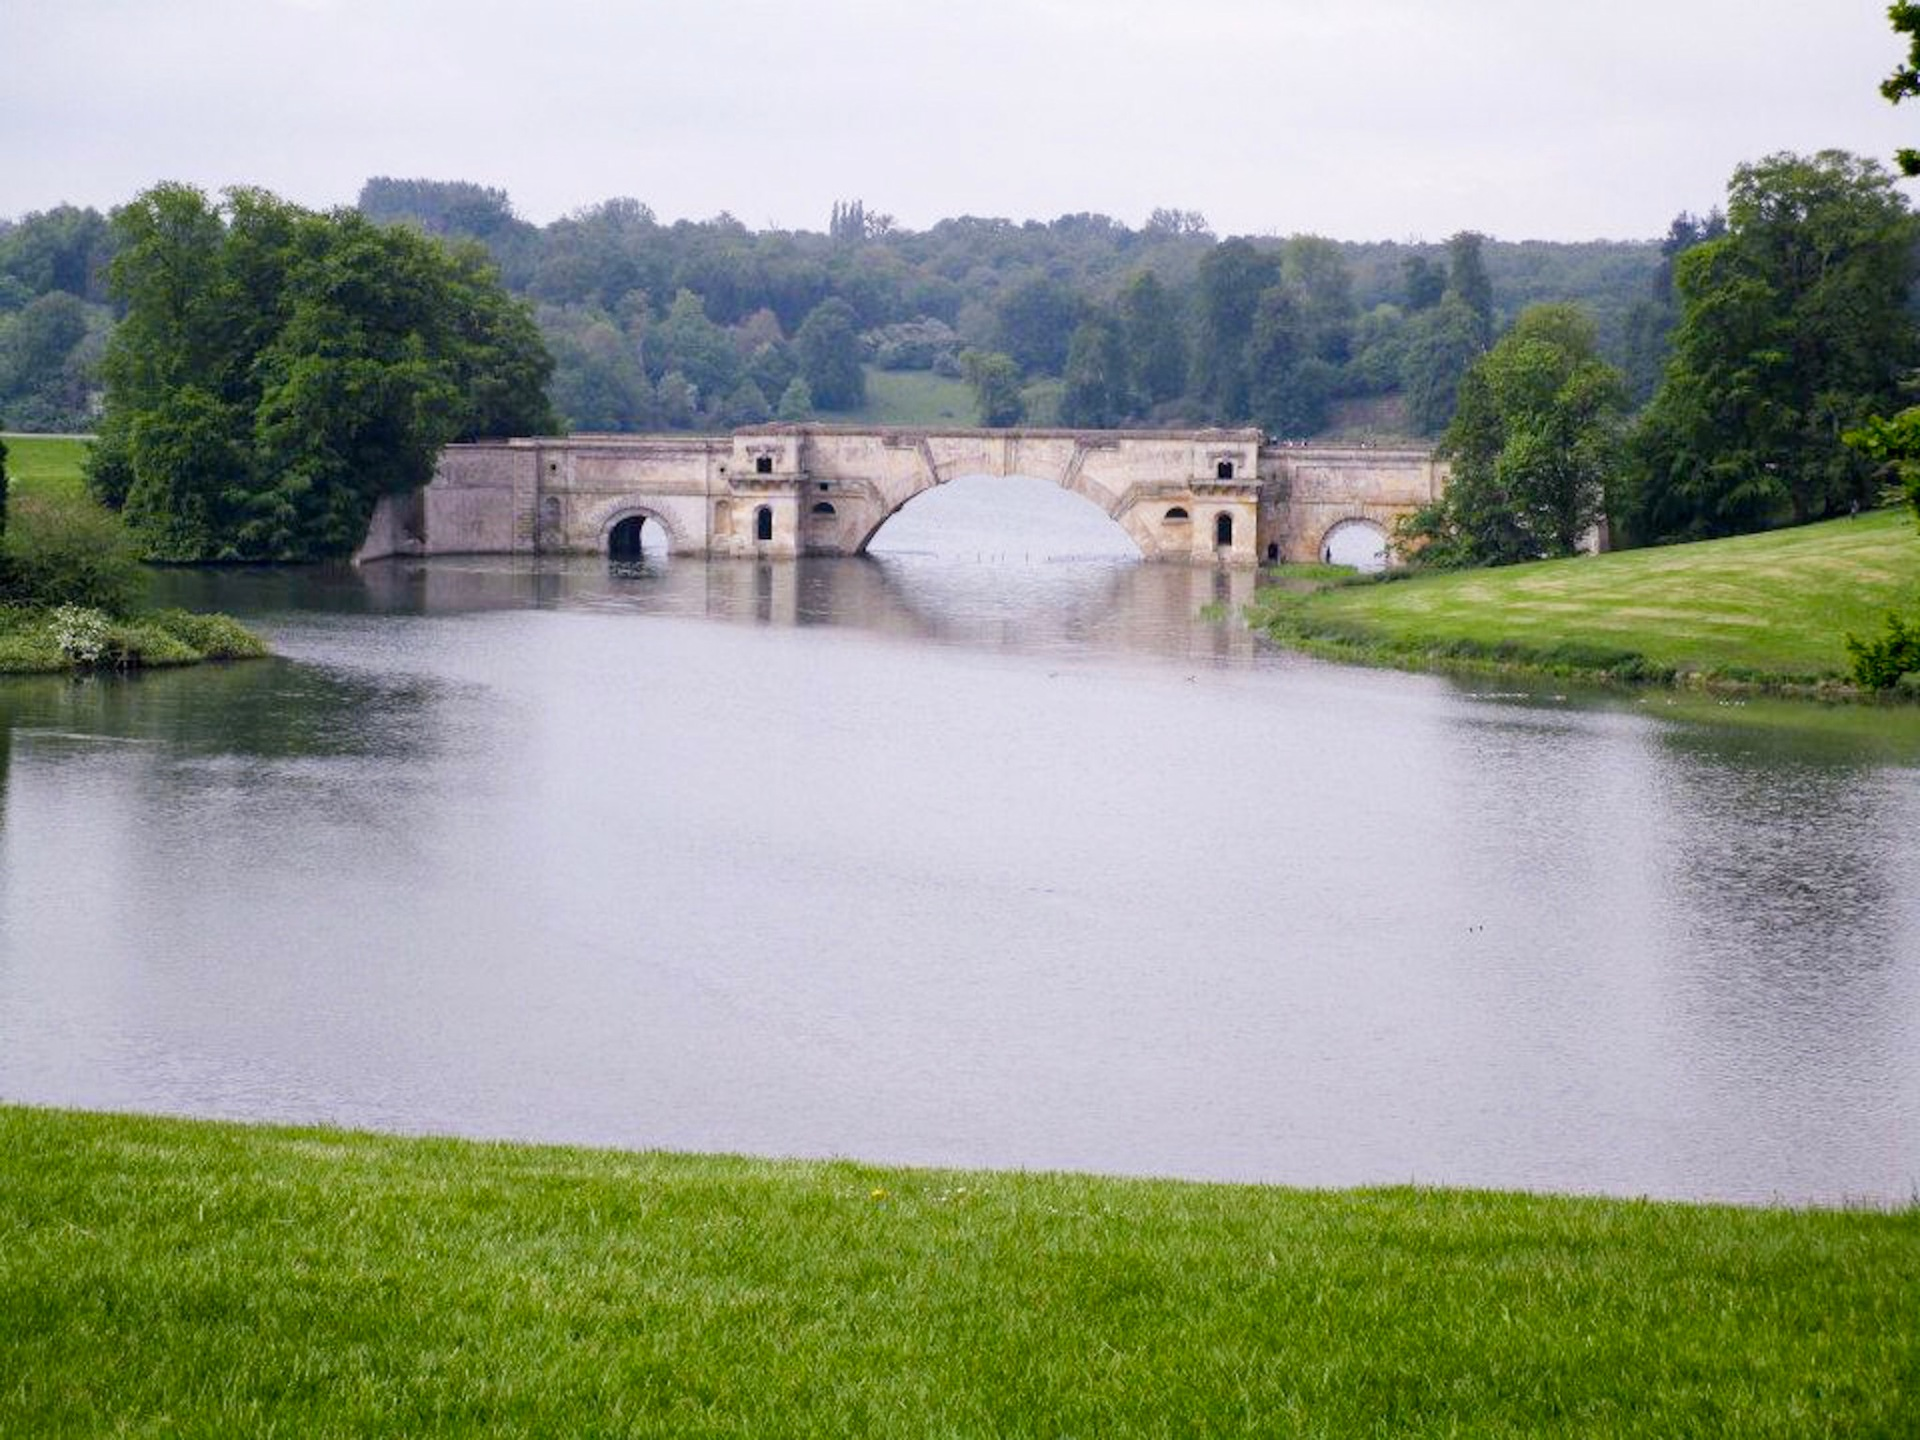 Lake at Blenheim palace